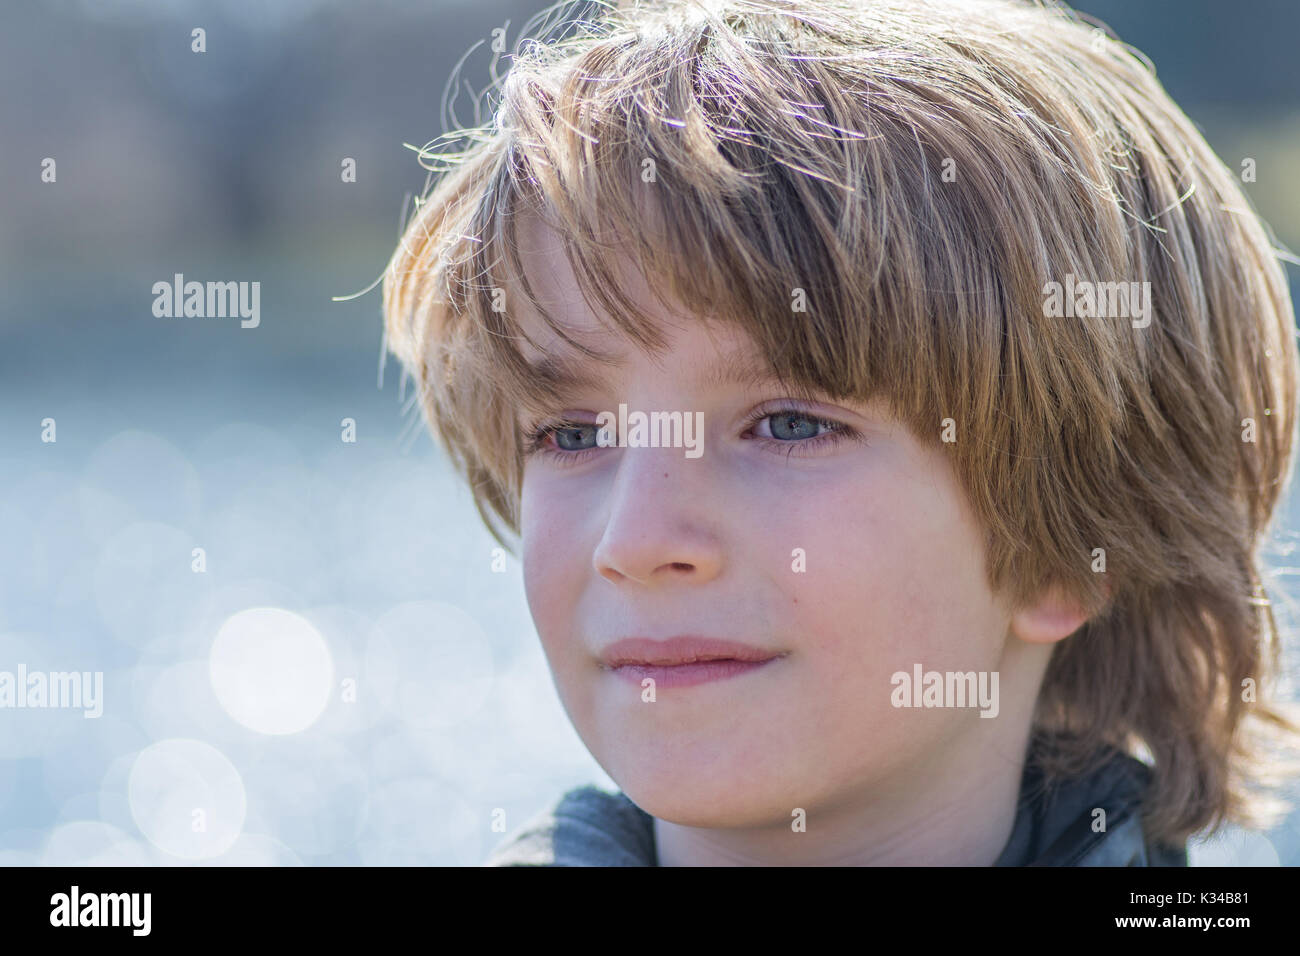 Portrait of a boy with blurred background - Stock Image